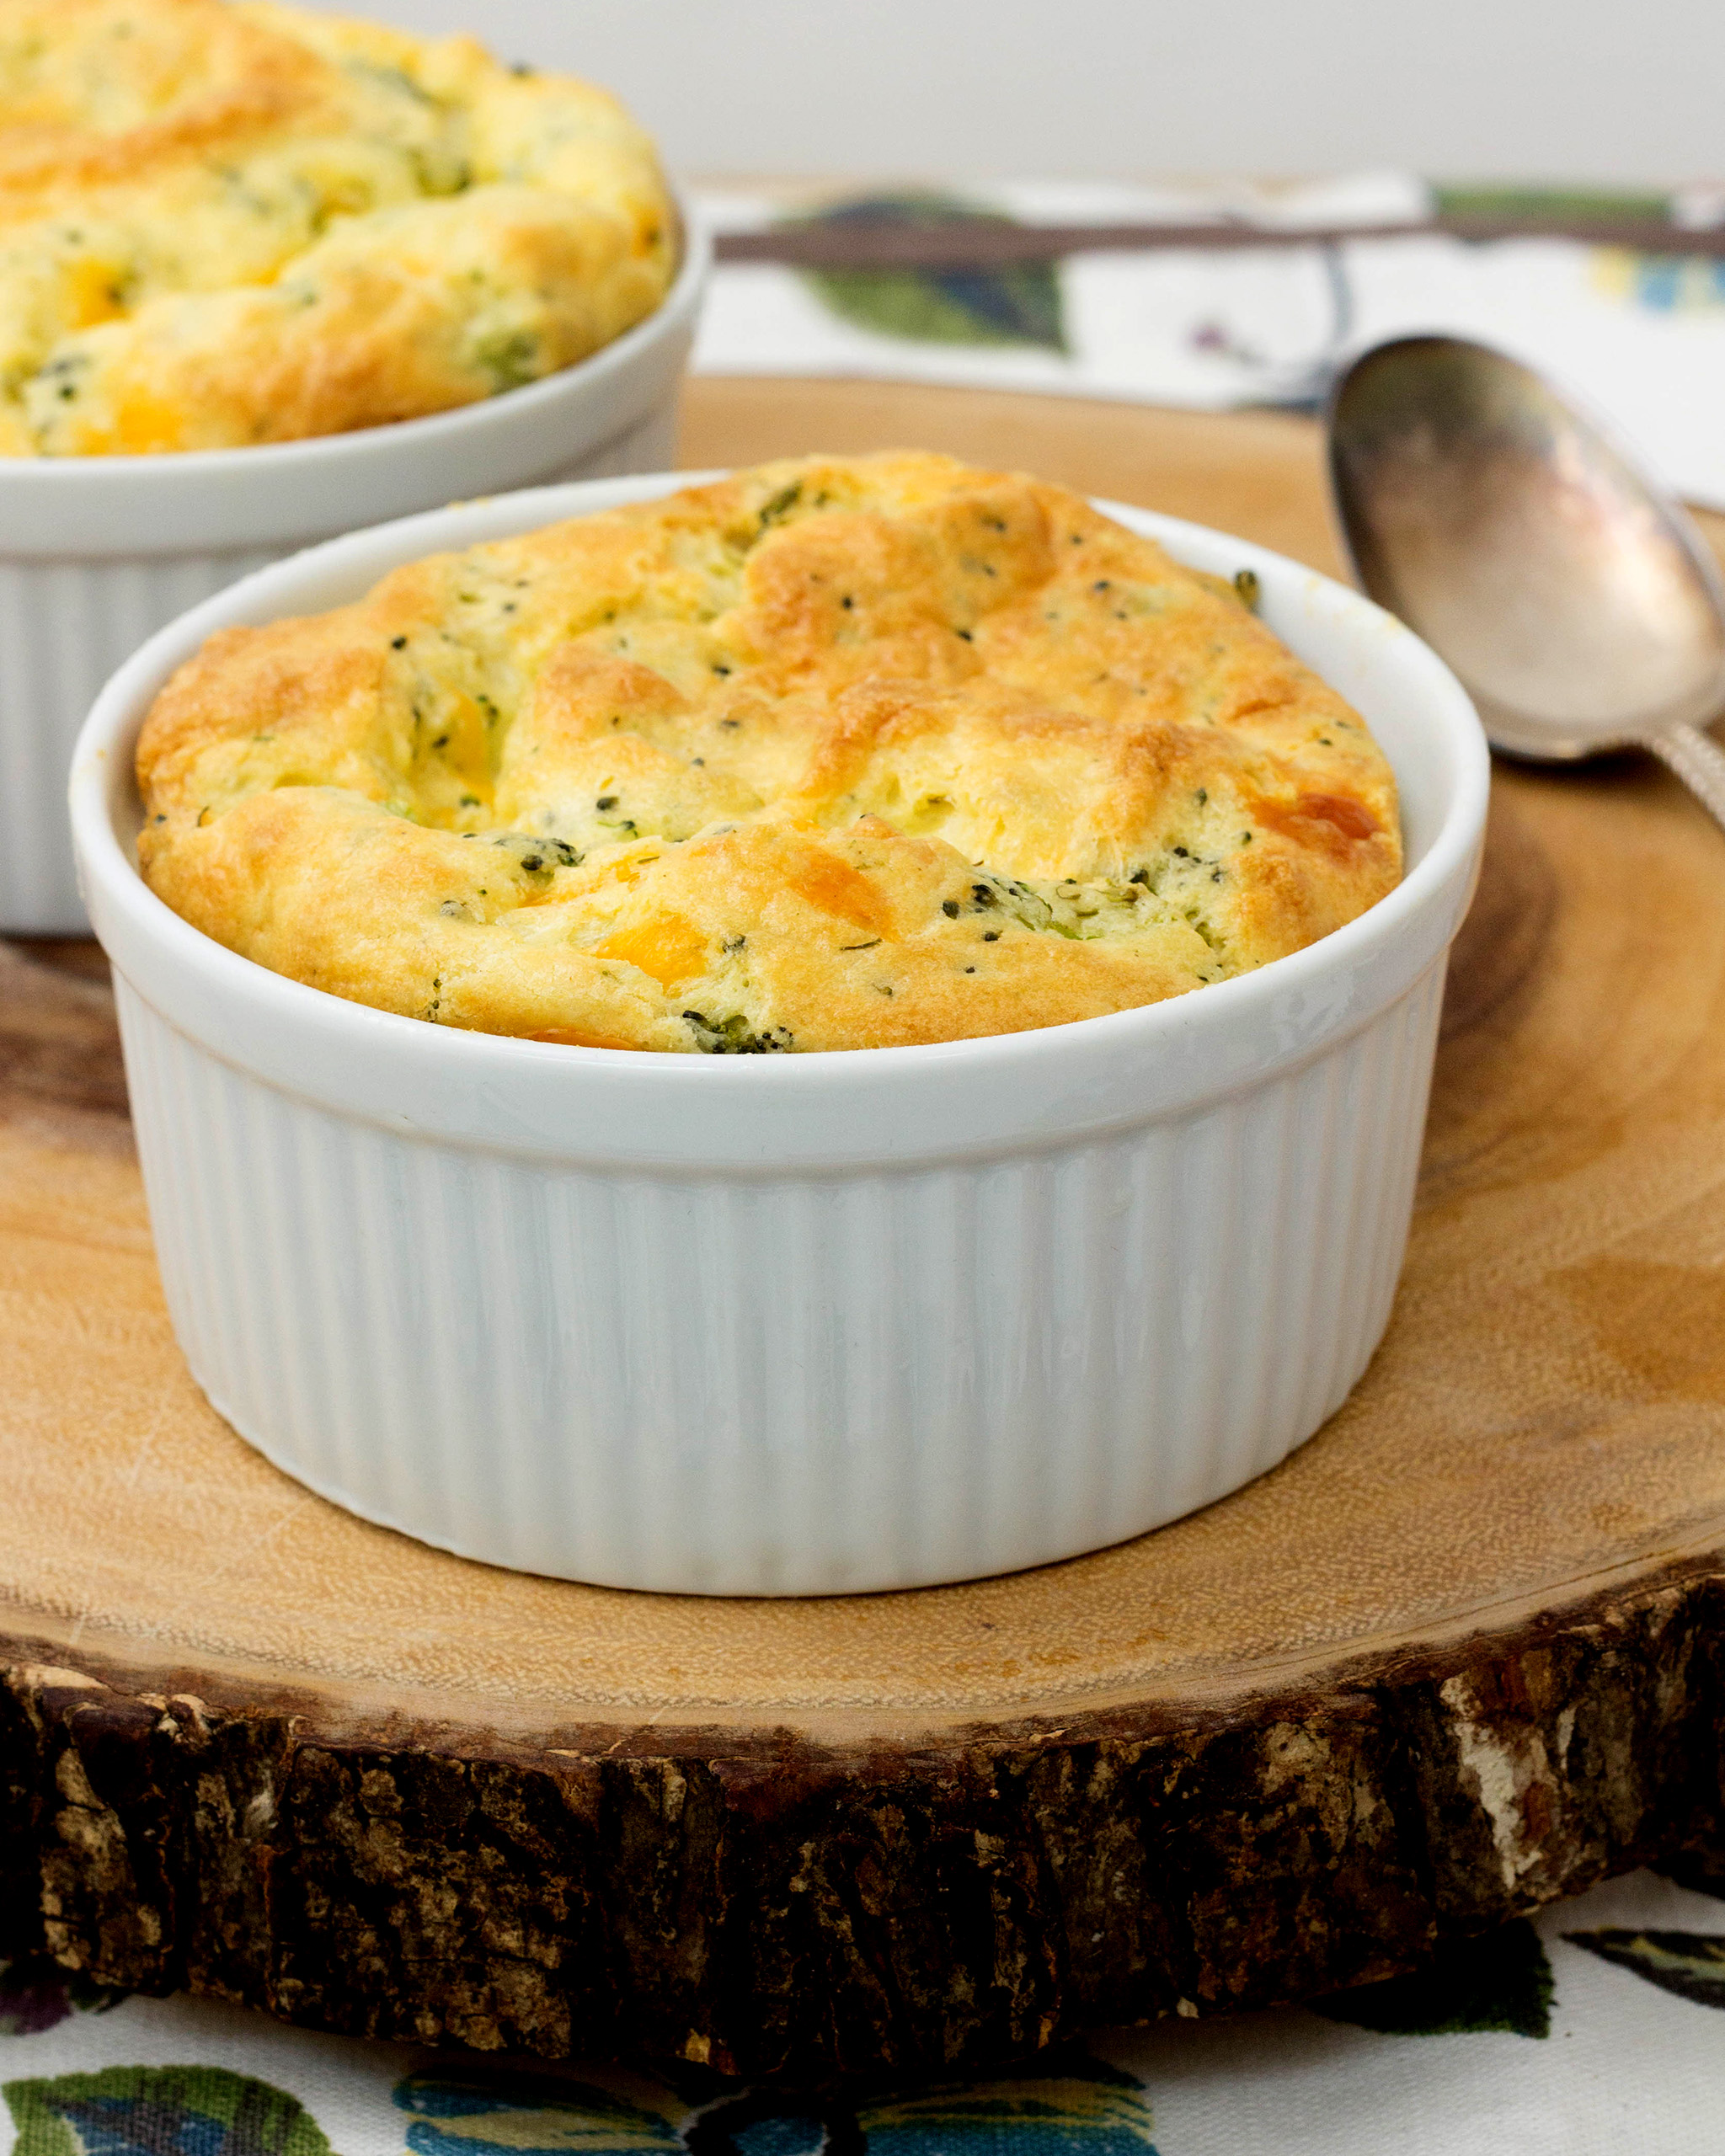 A photo of a finished broccoli soufflé in a white ramikin